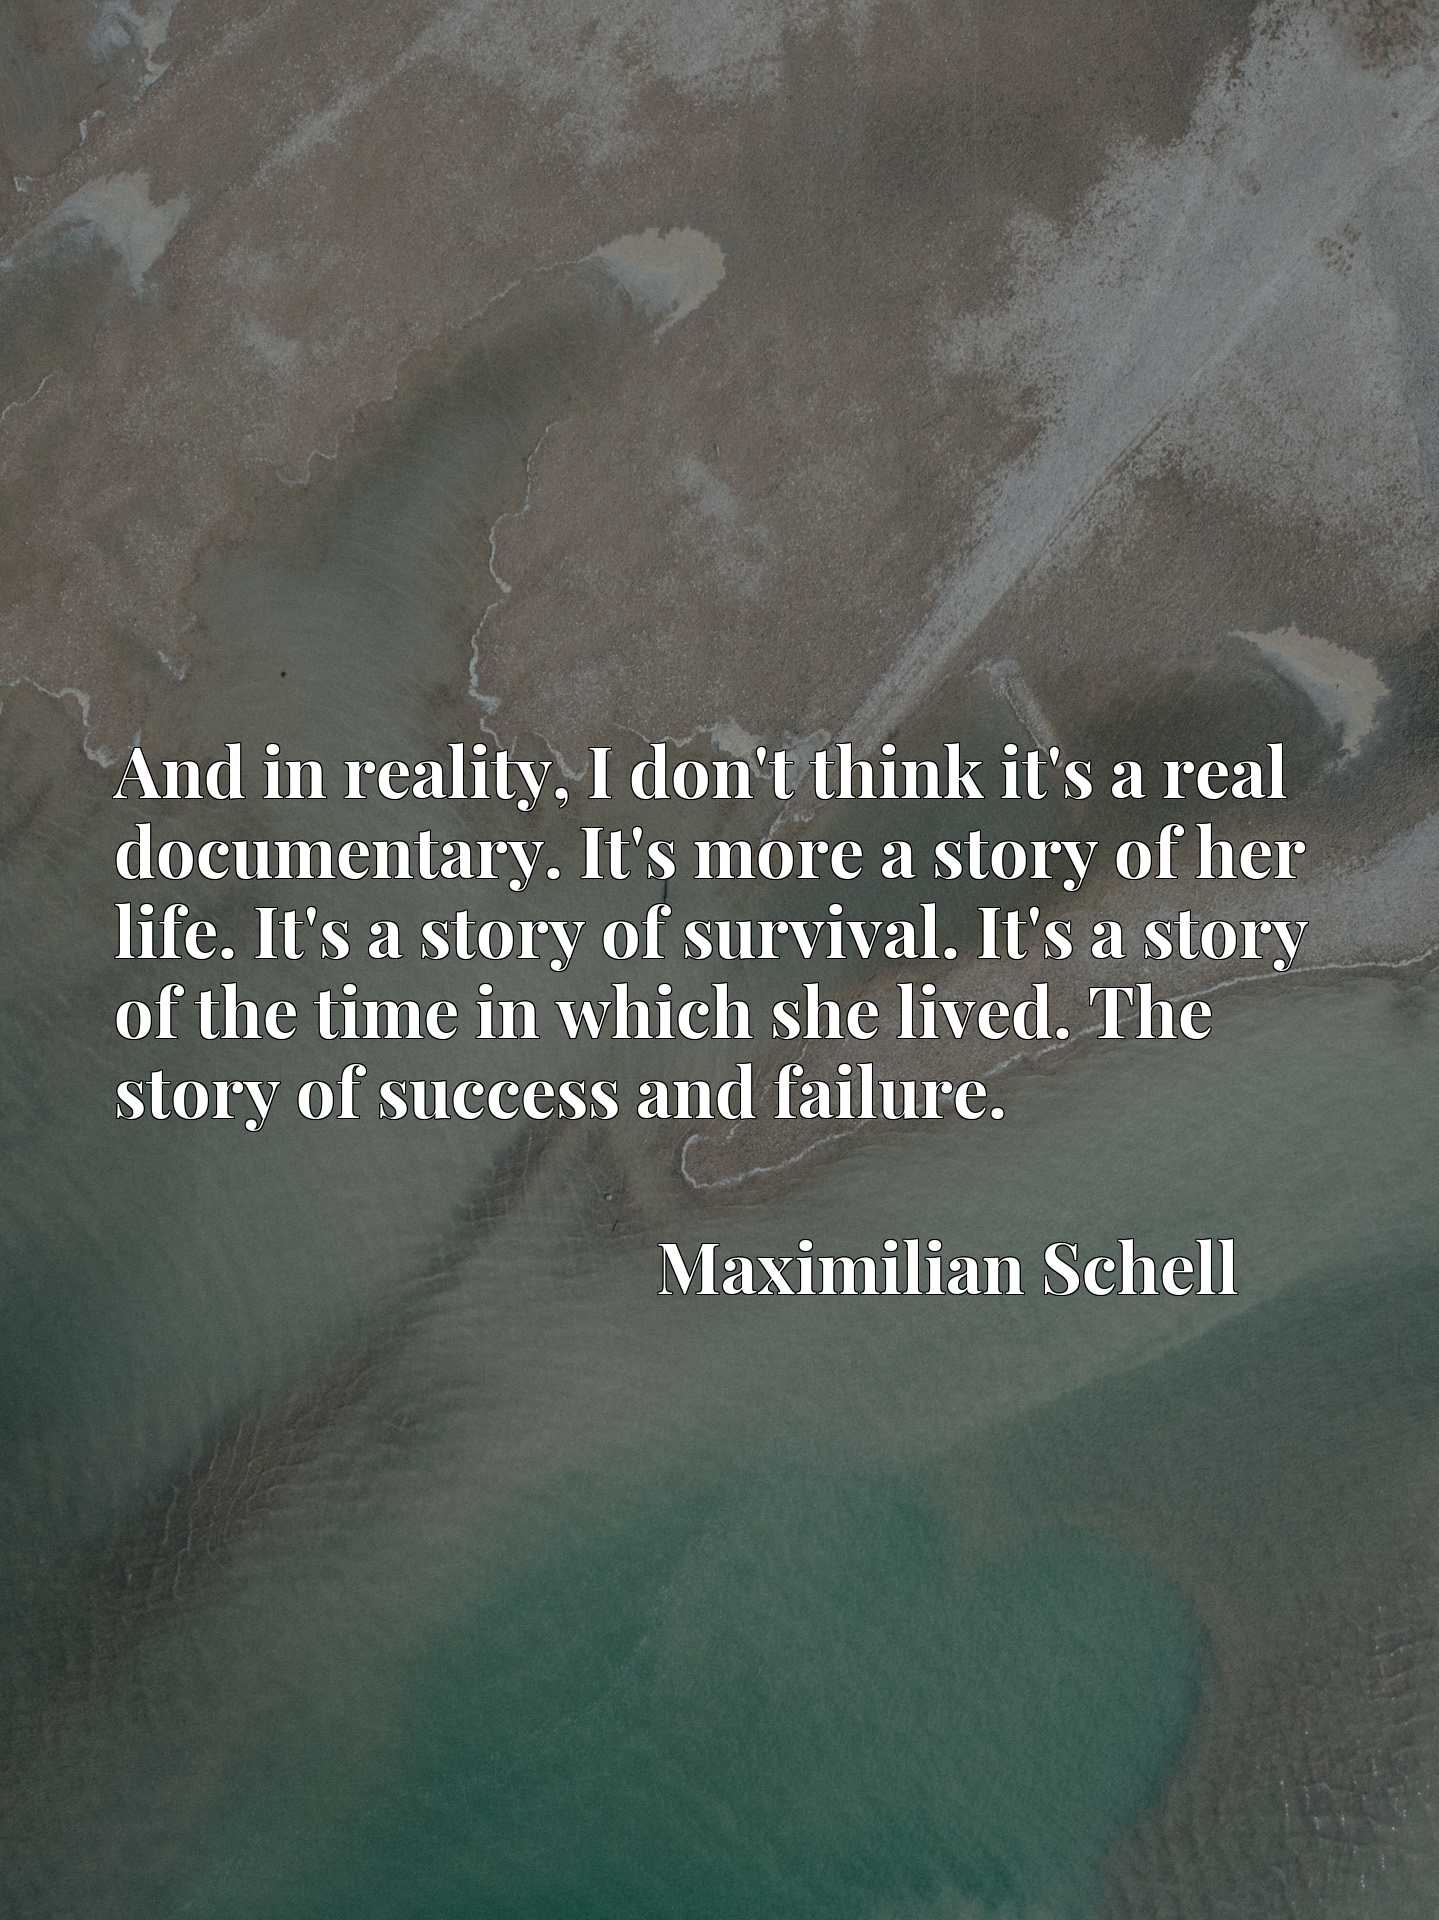 And in reality, I don't think it's a real documentary. It's more a story of her life. It's a story of survival. It's a story of the time in which she lived. The story of success and failure.